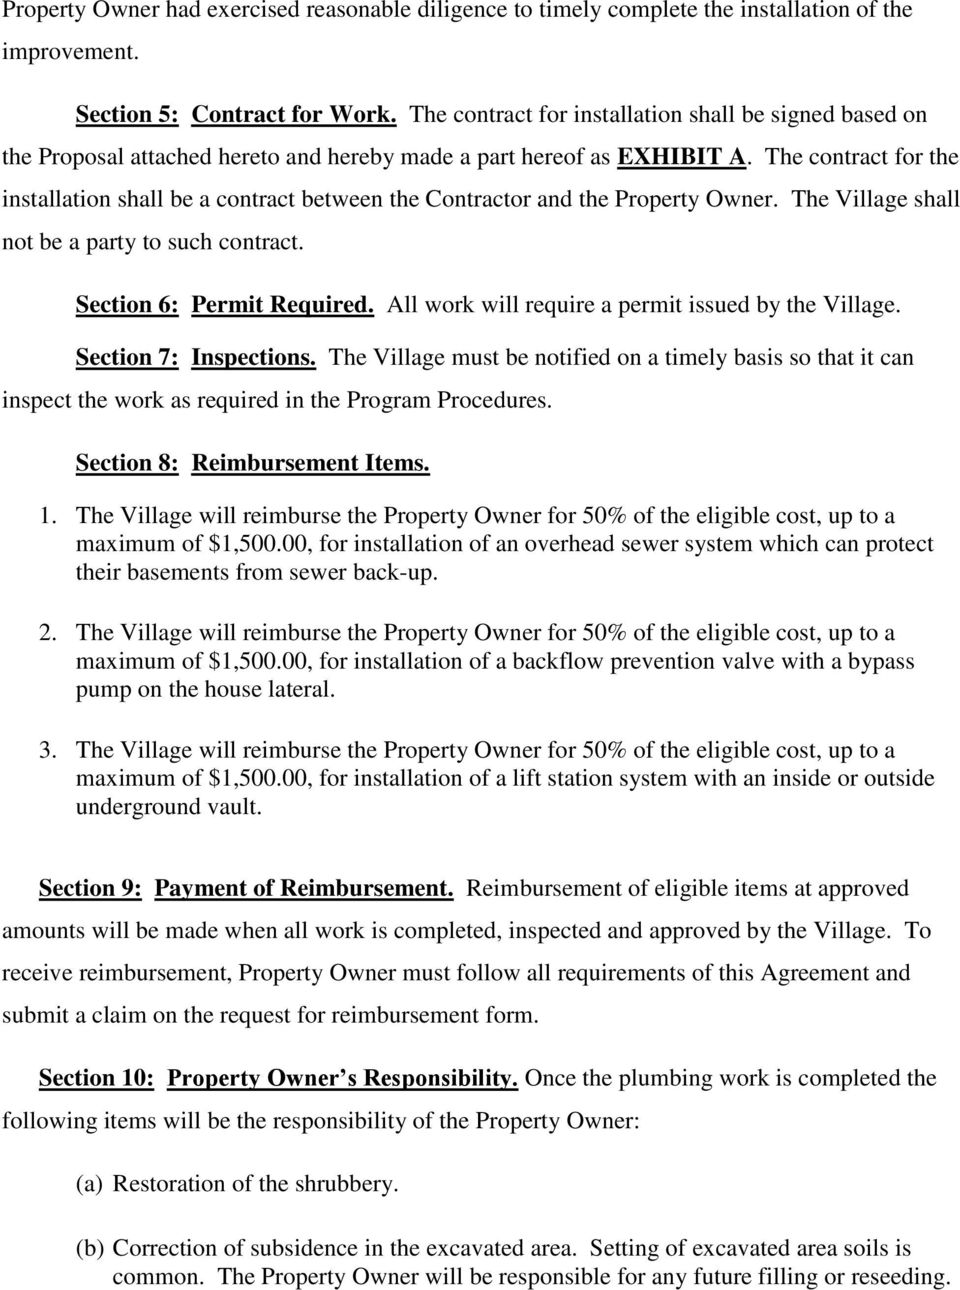 The contract for the installation shall be a contract between the Contractor and the Property Owner. The Village shall not be a party to such contract. Section 6: Permit Required.